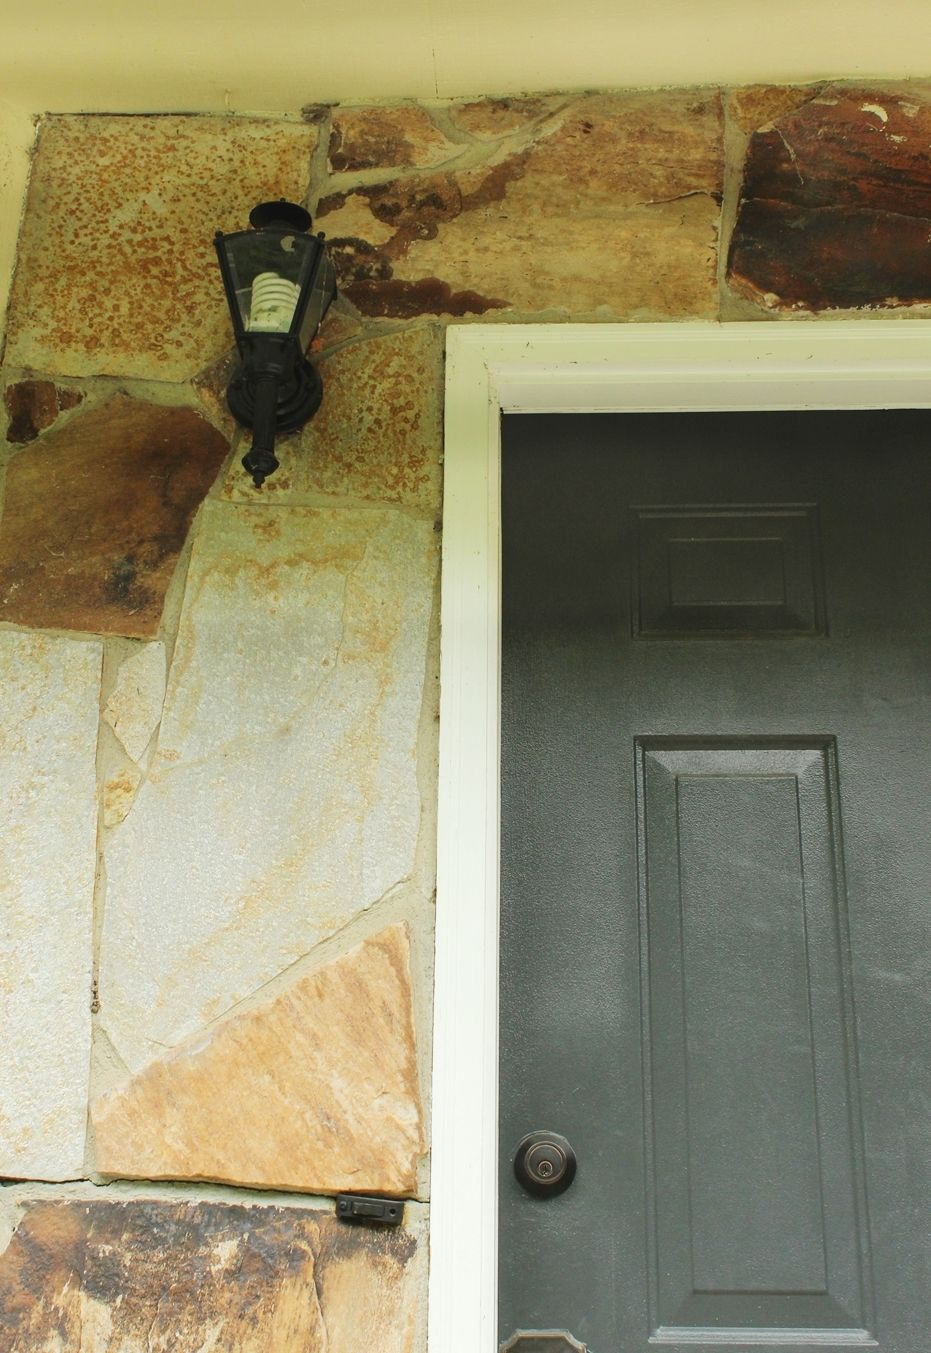 How to remove the old lighting fixture from porch